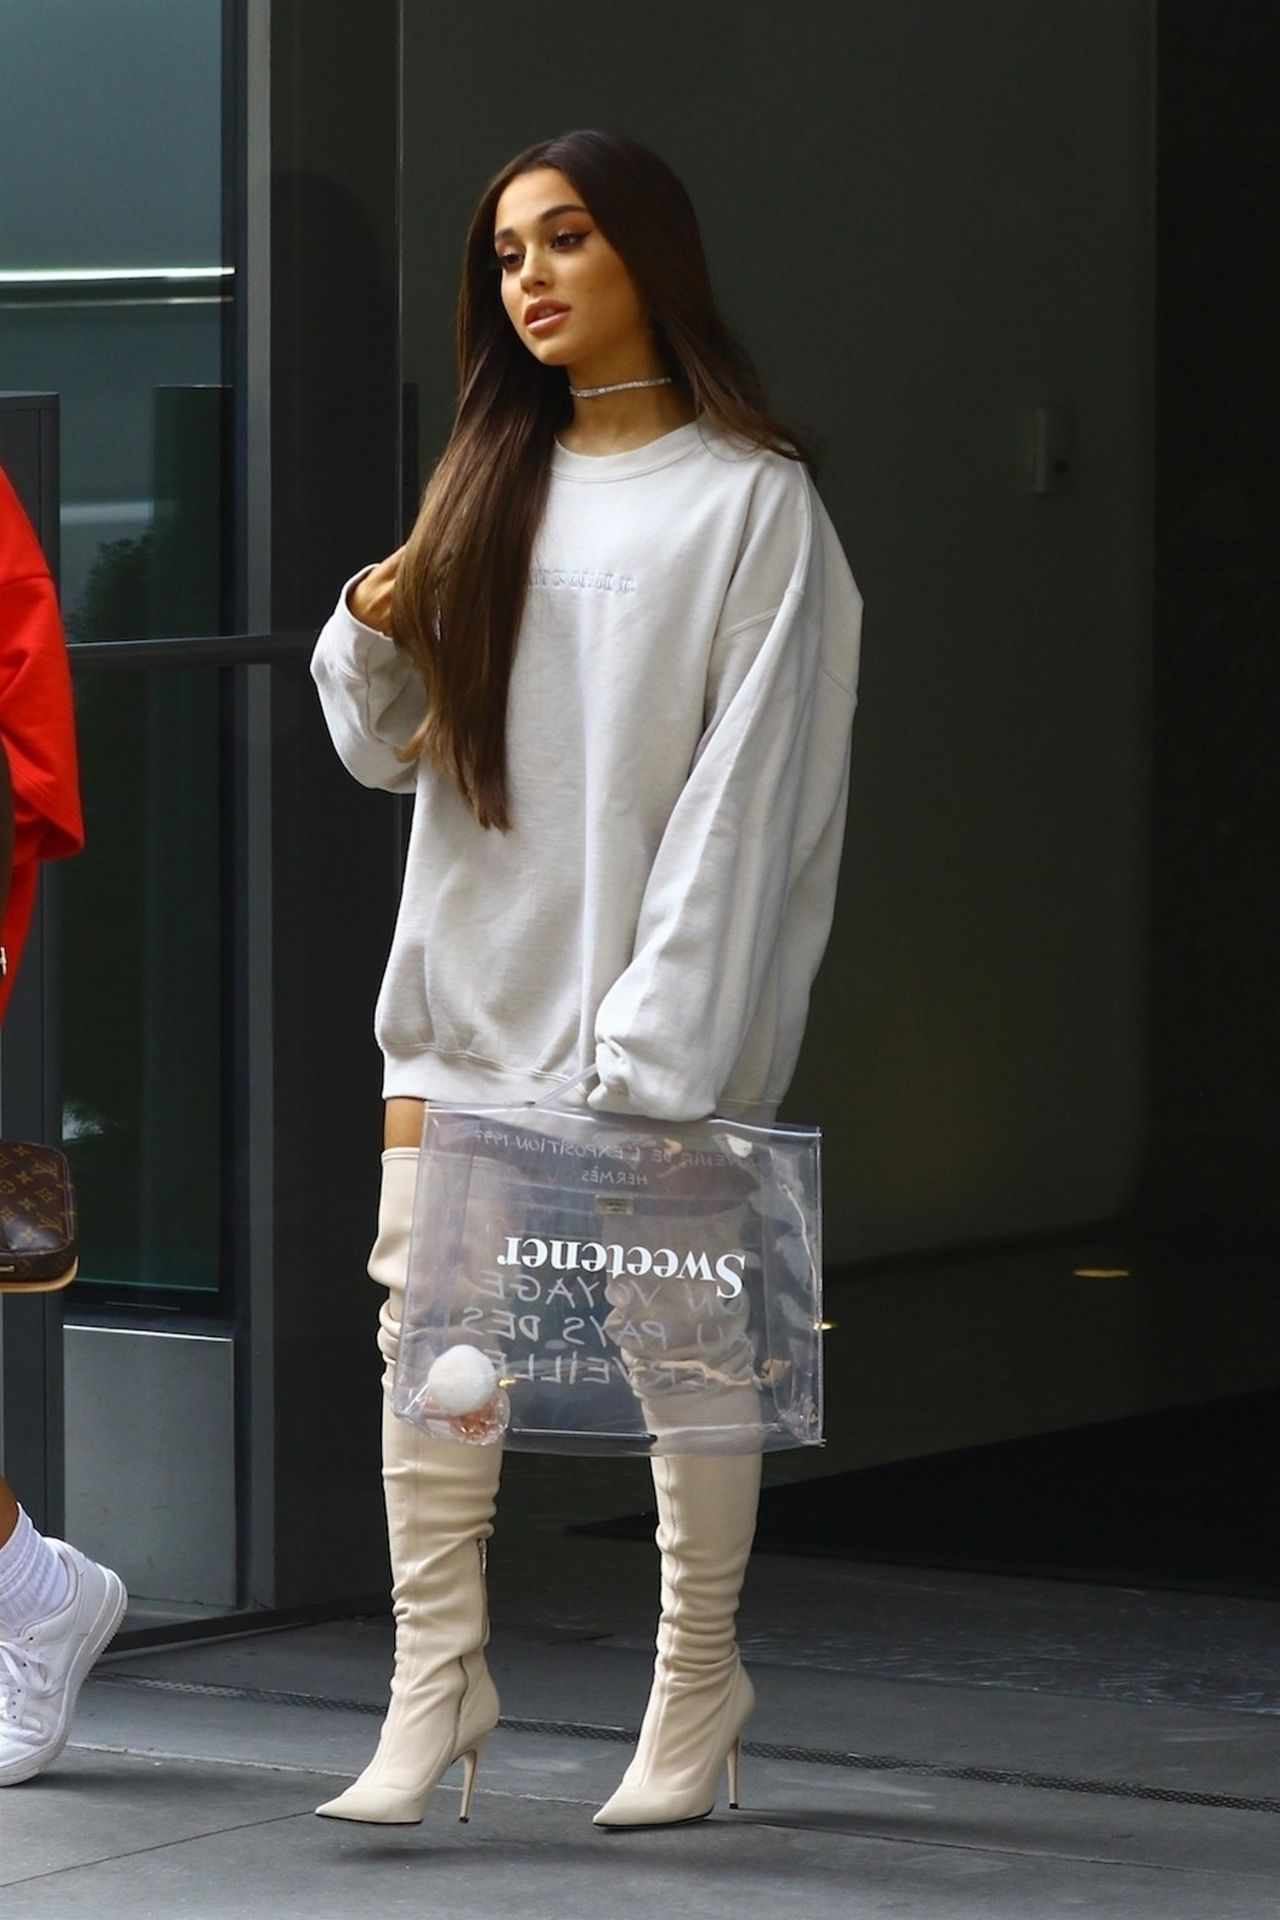 Ariana Grande Out In Nyc 08 17 2018